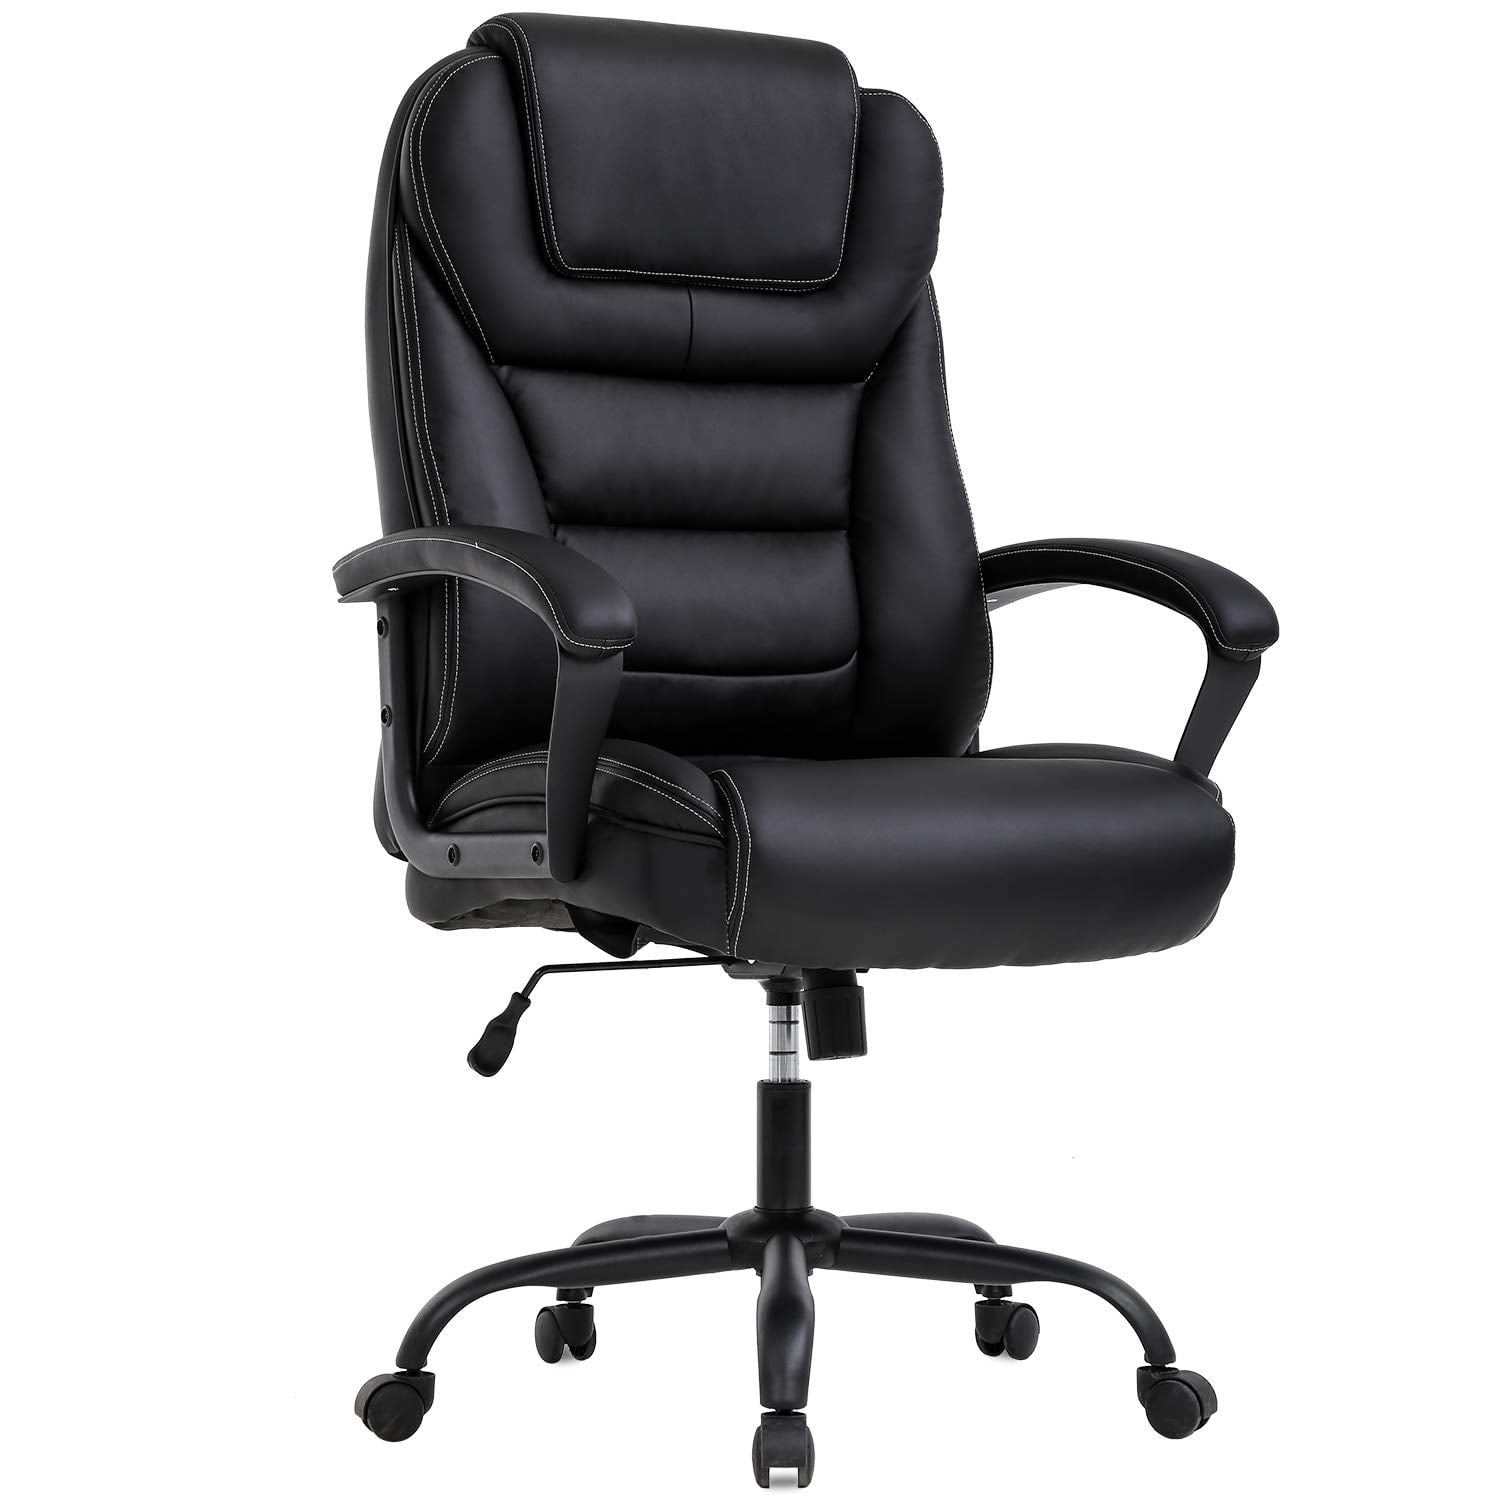 Frederick task chair replacement parts